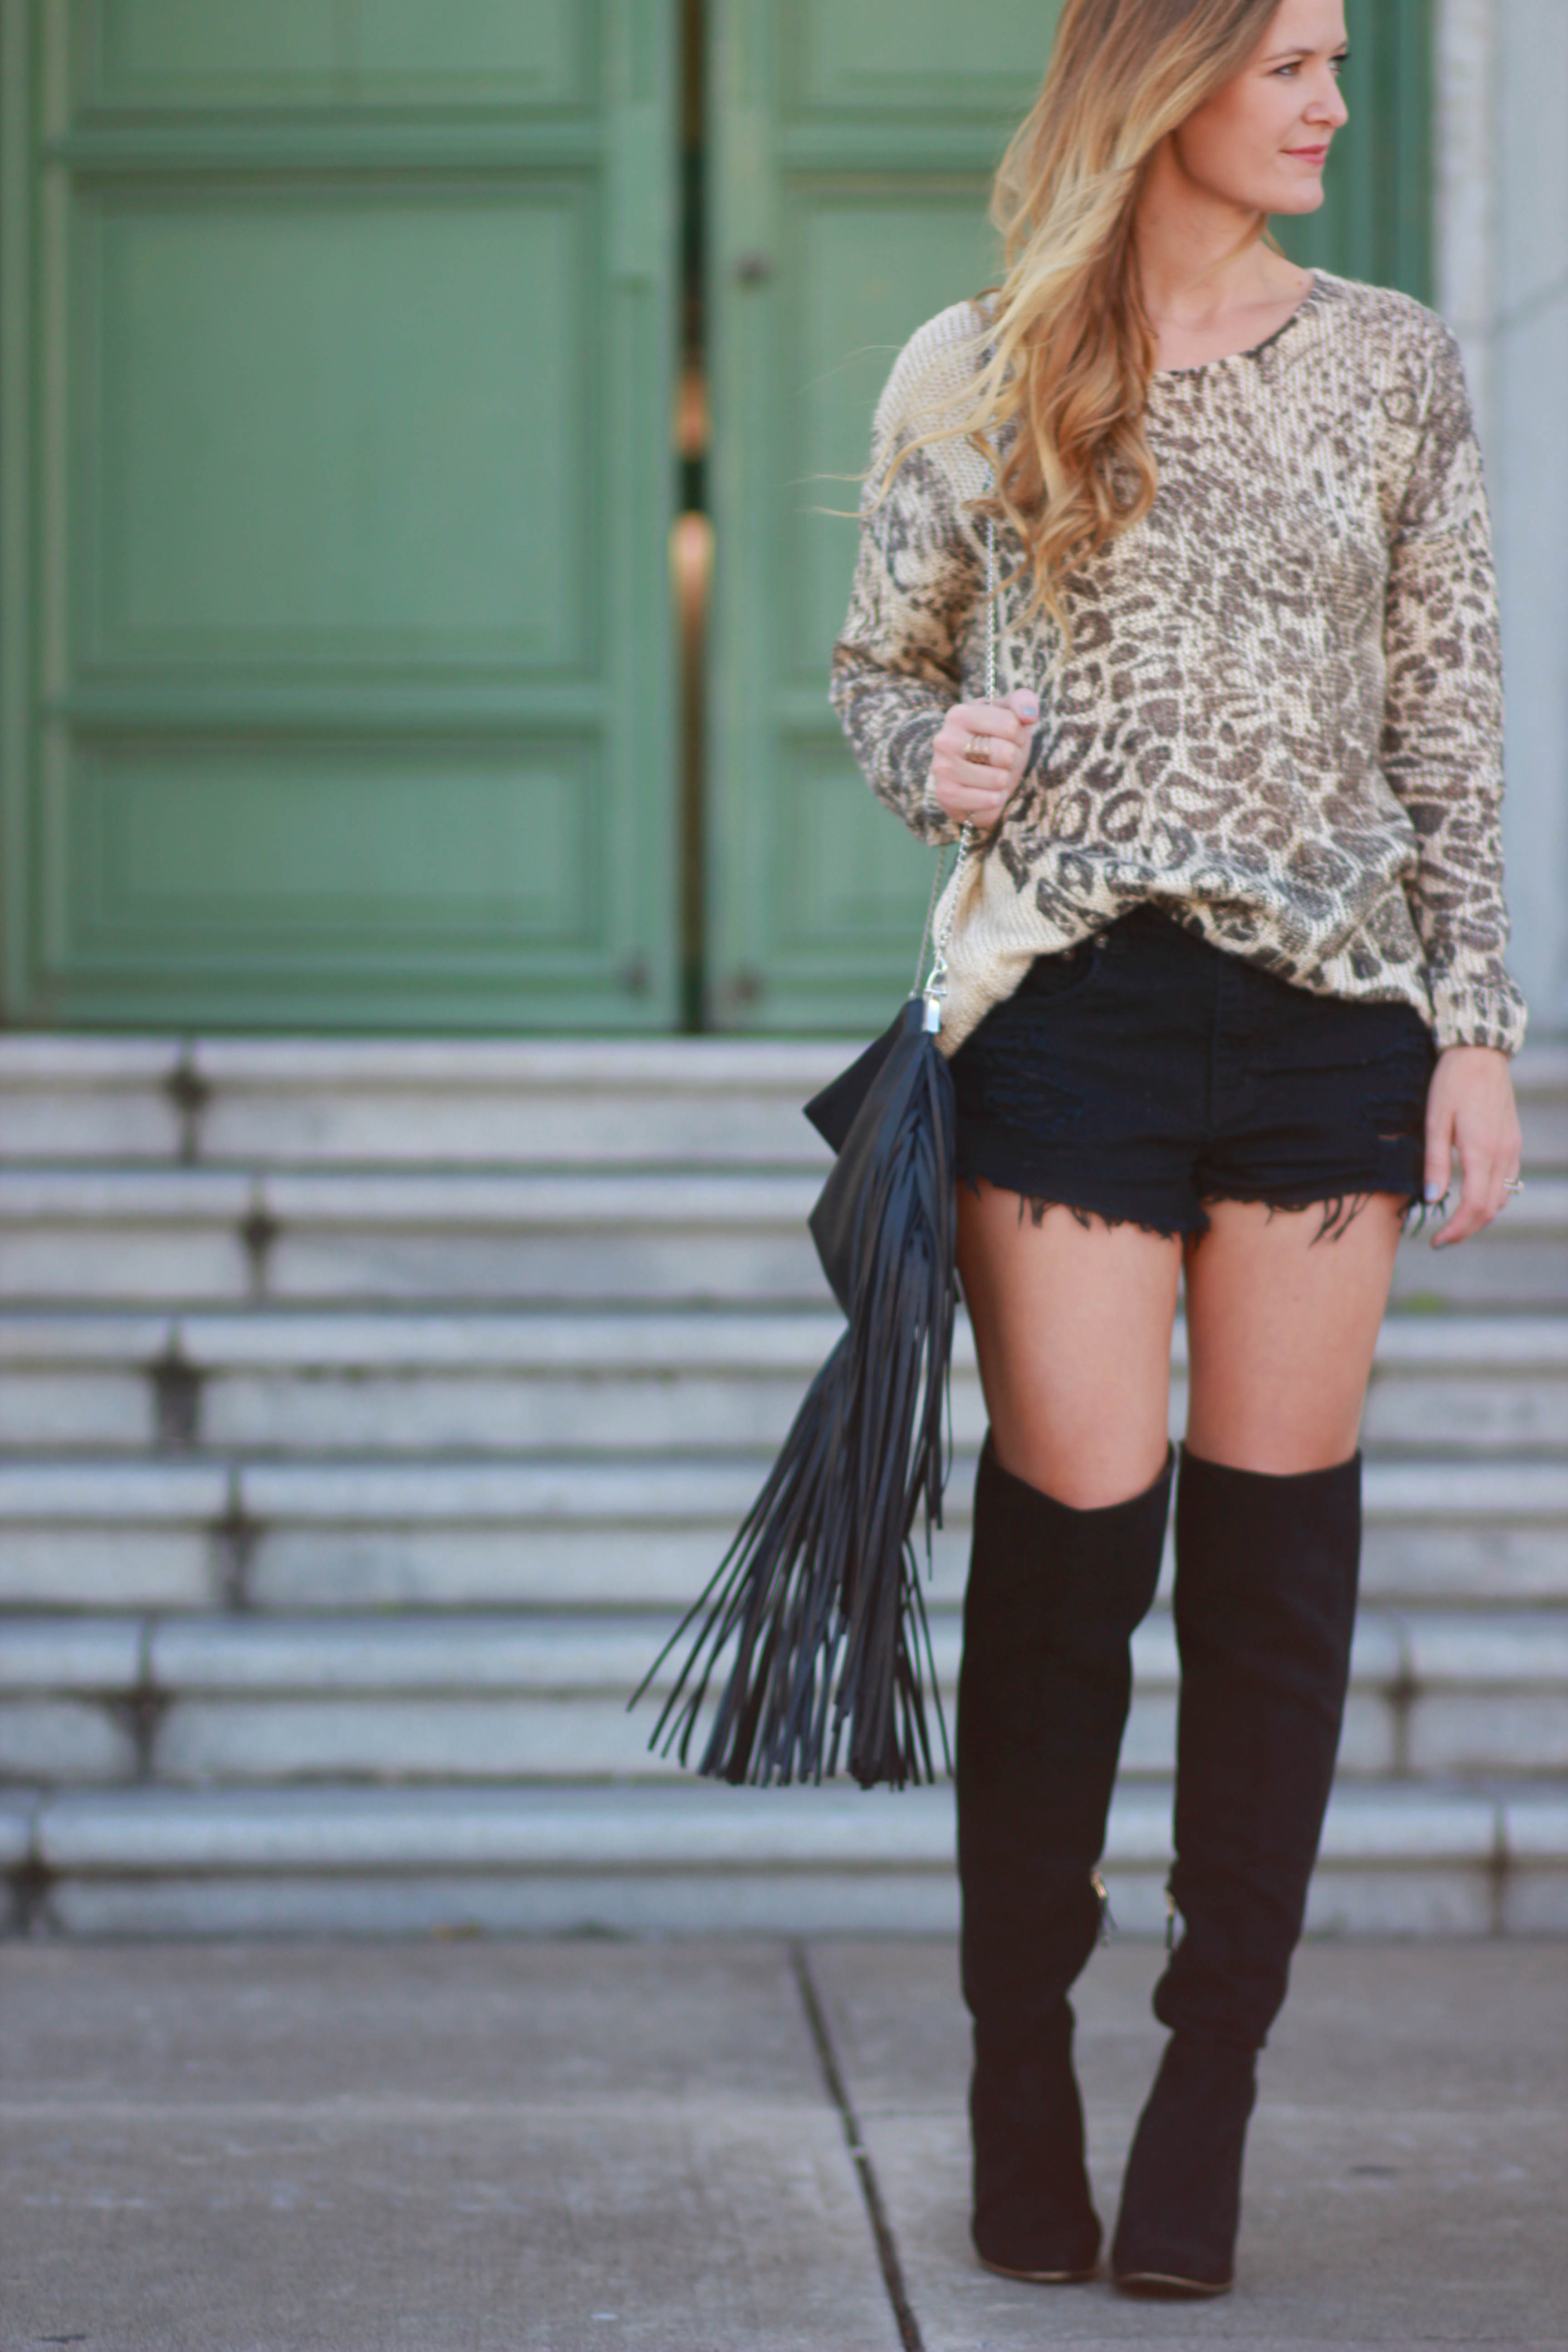 florida fashion blogger styles leopard sweater with target over the knee boots and h&m fringe bag for a stylish fall outfit